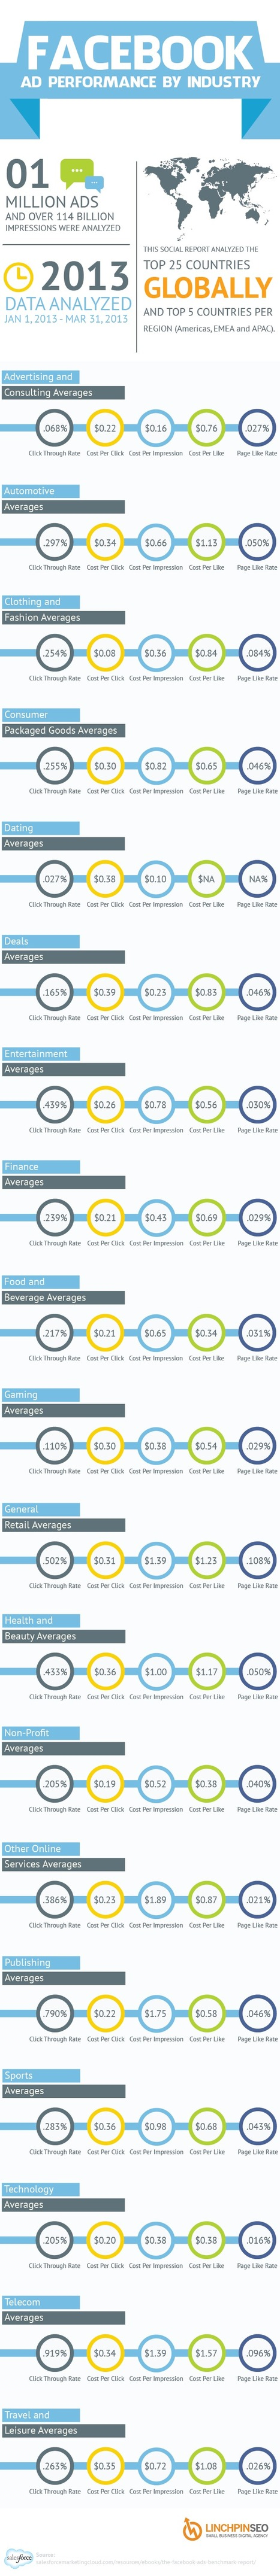 [Infographic] Facebook Ad Performance by Industry | MarketingHits | Scoop.it